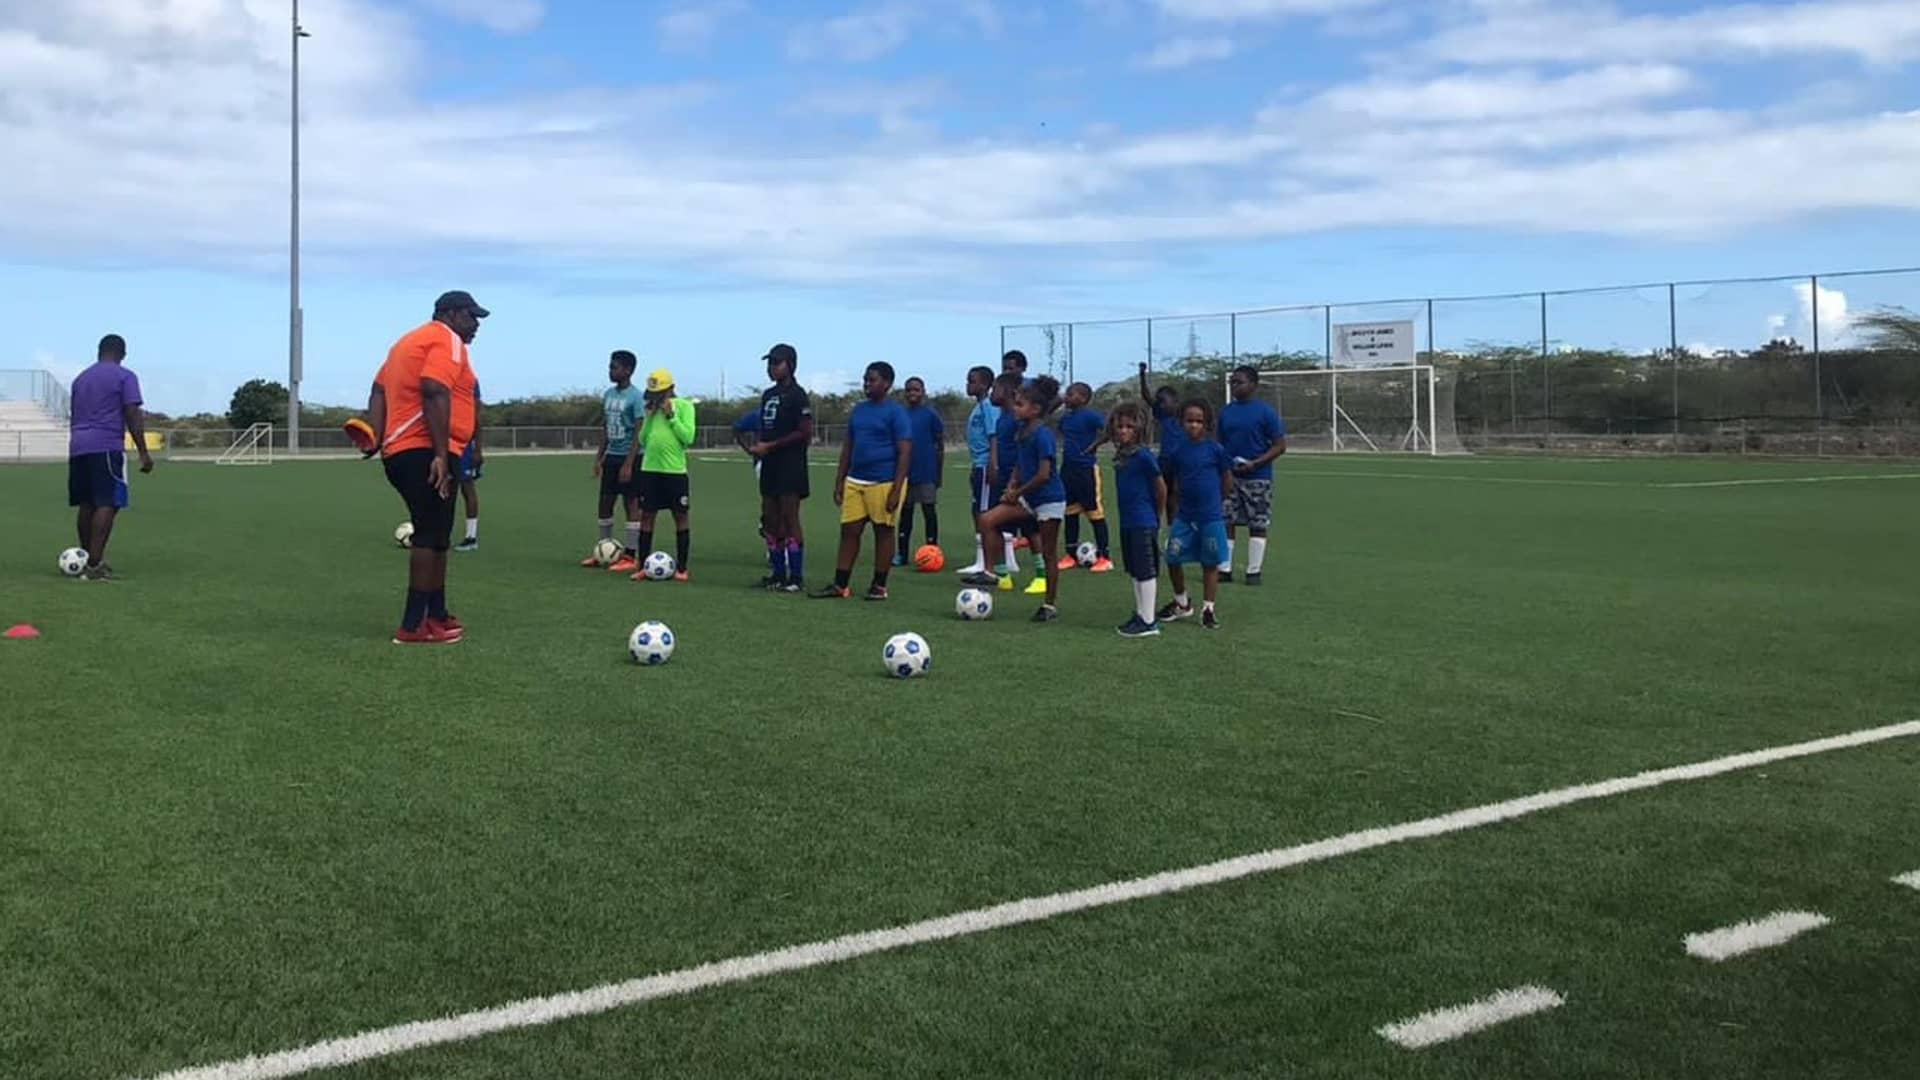 Our kids spent this summer playing soccer with Coach Nabo Samuel at Cutting Edge Foundation Summer Camp.